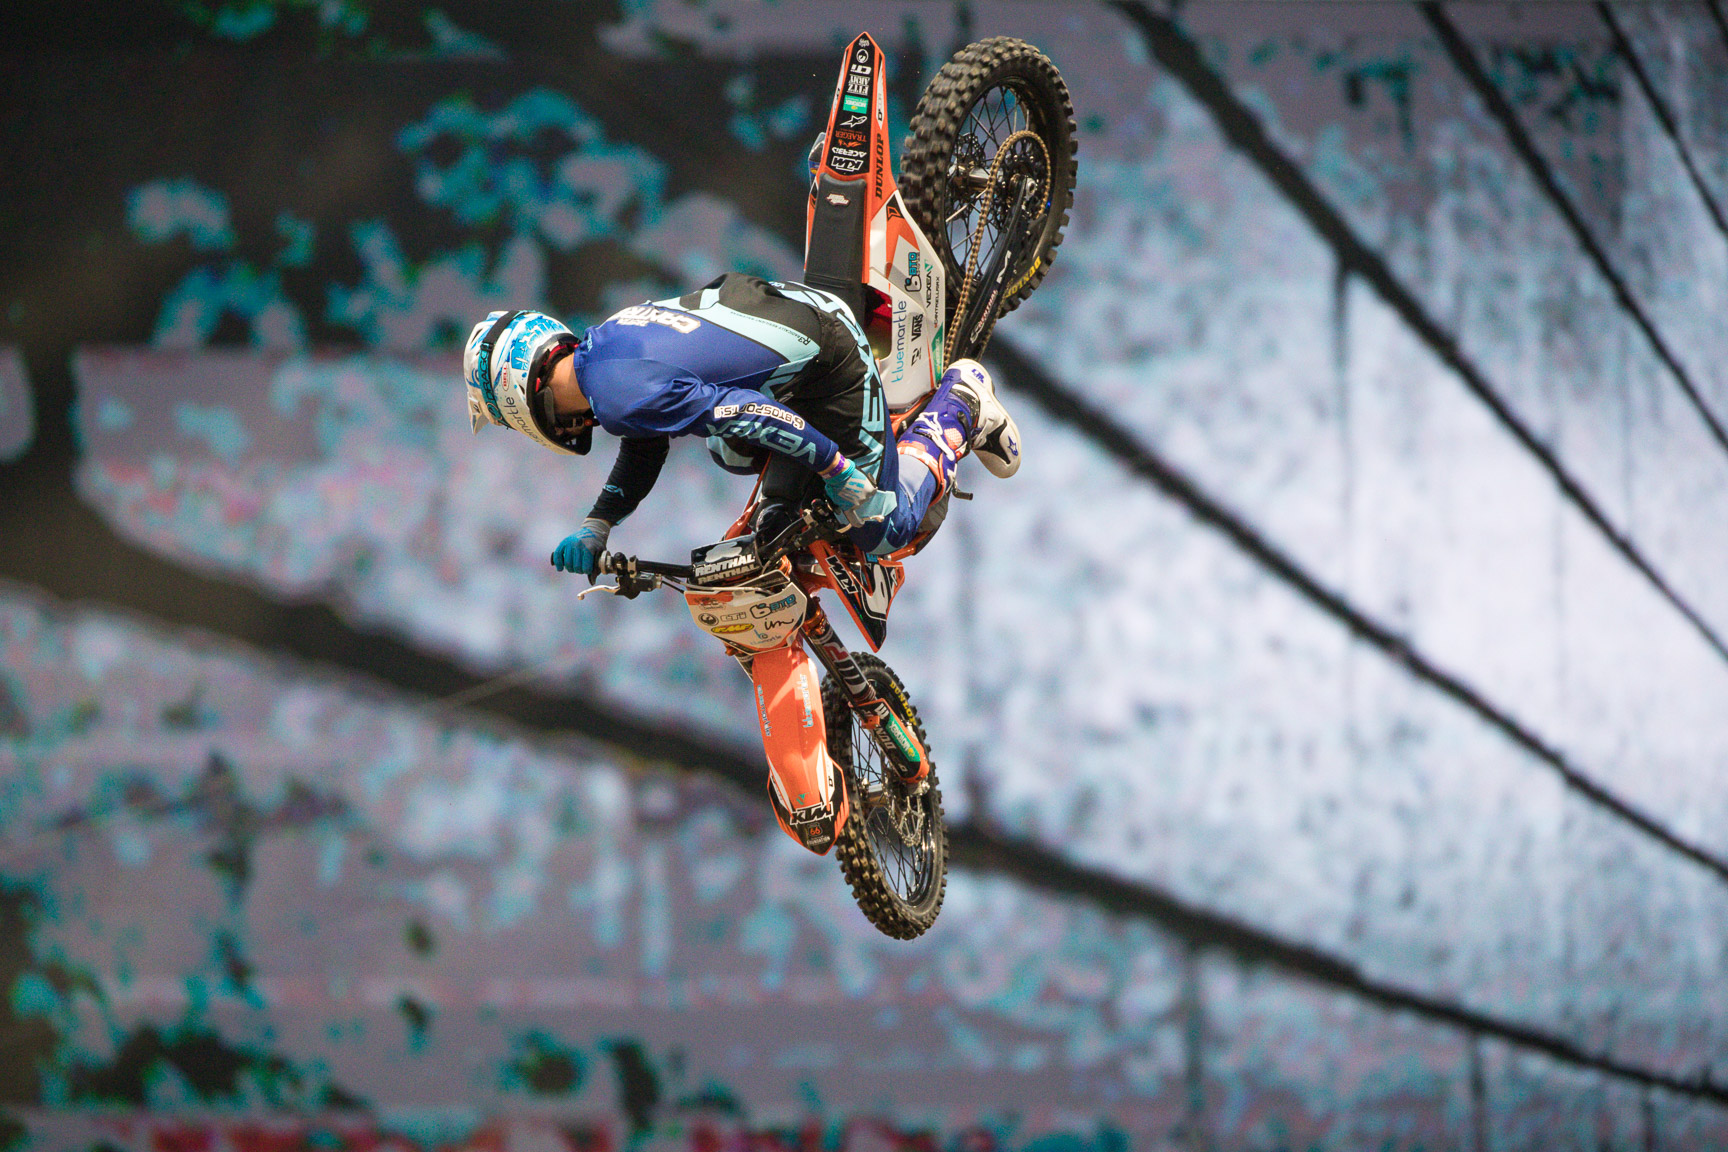 X Games rookie Destin Cantrell styled his way to a gold medal in the X Games fan-vote competition for Moto X Best Whip on Saturday night in Minneapolis.